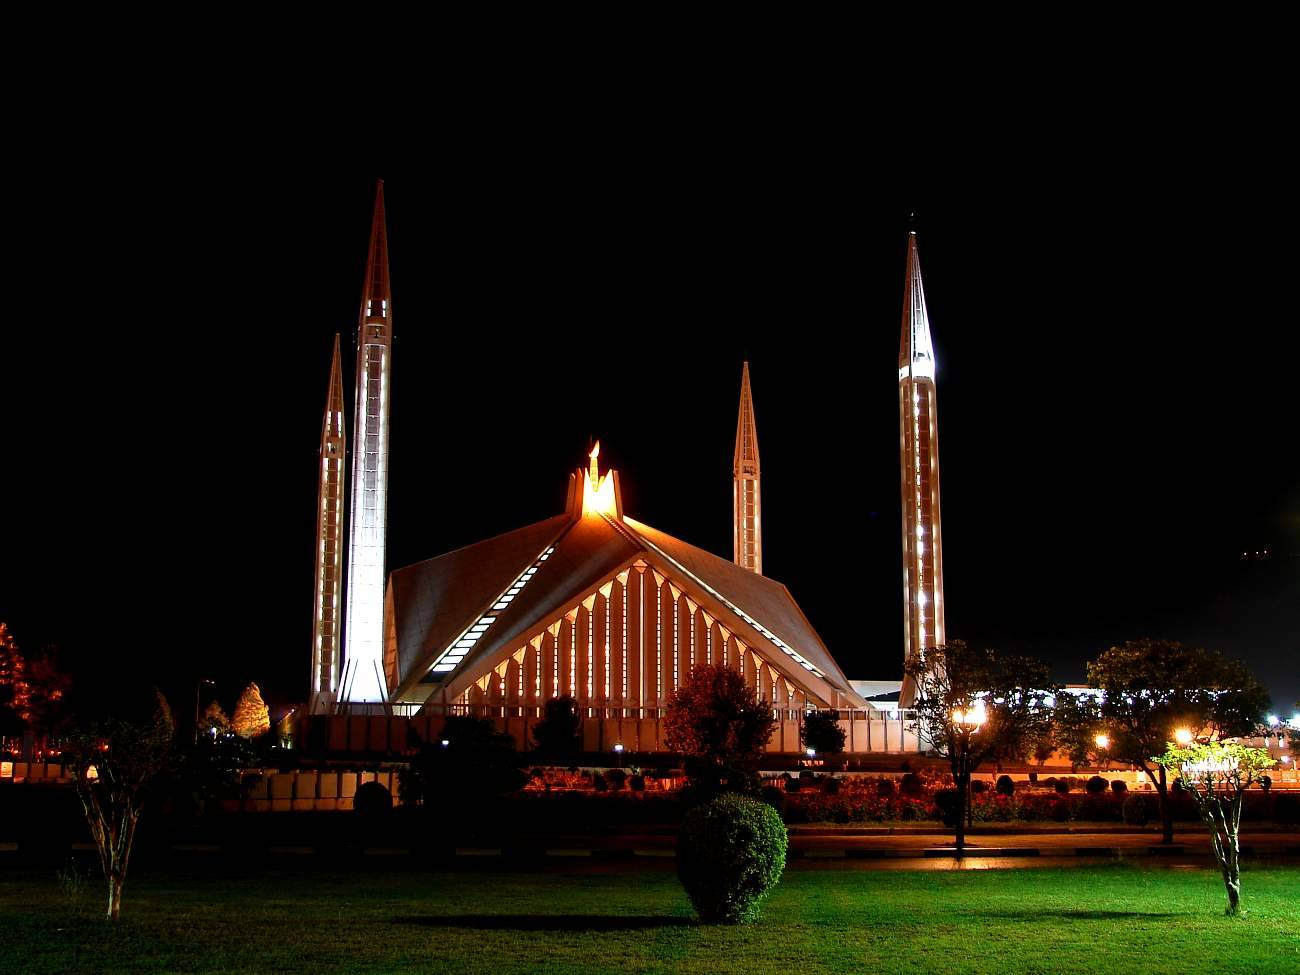 The Shah Faisal Mosque in Pakistan was the largest mosque in the world from 1986 until 1993.